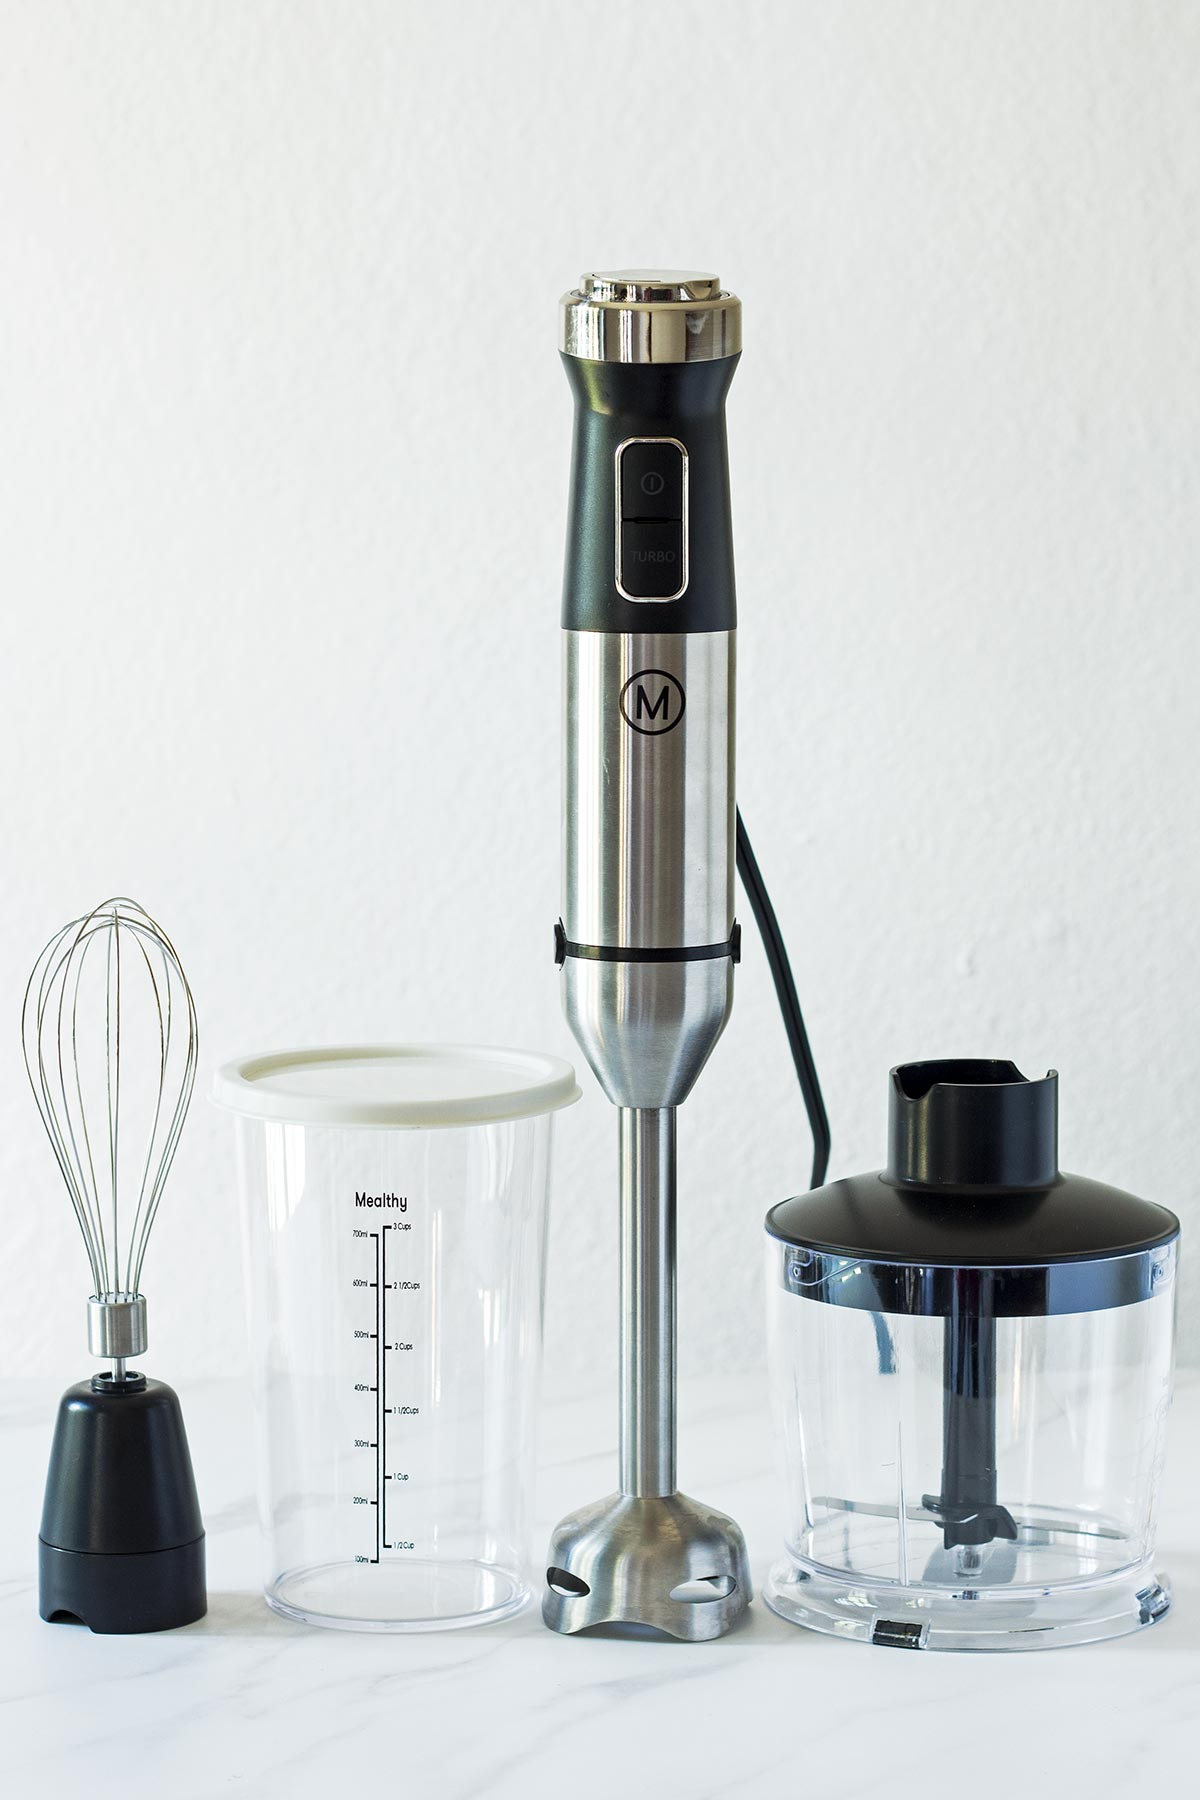 Mealthy HandBlend Immersion Blender Components